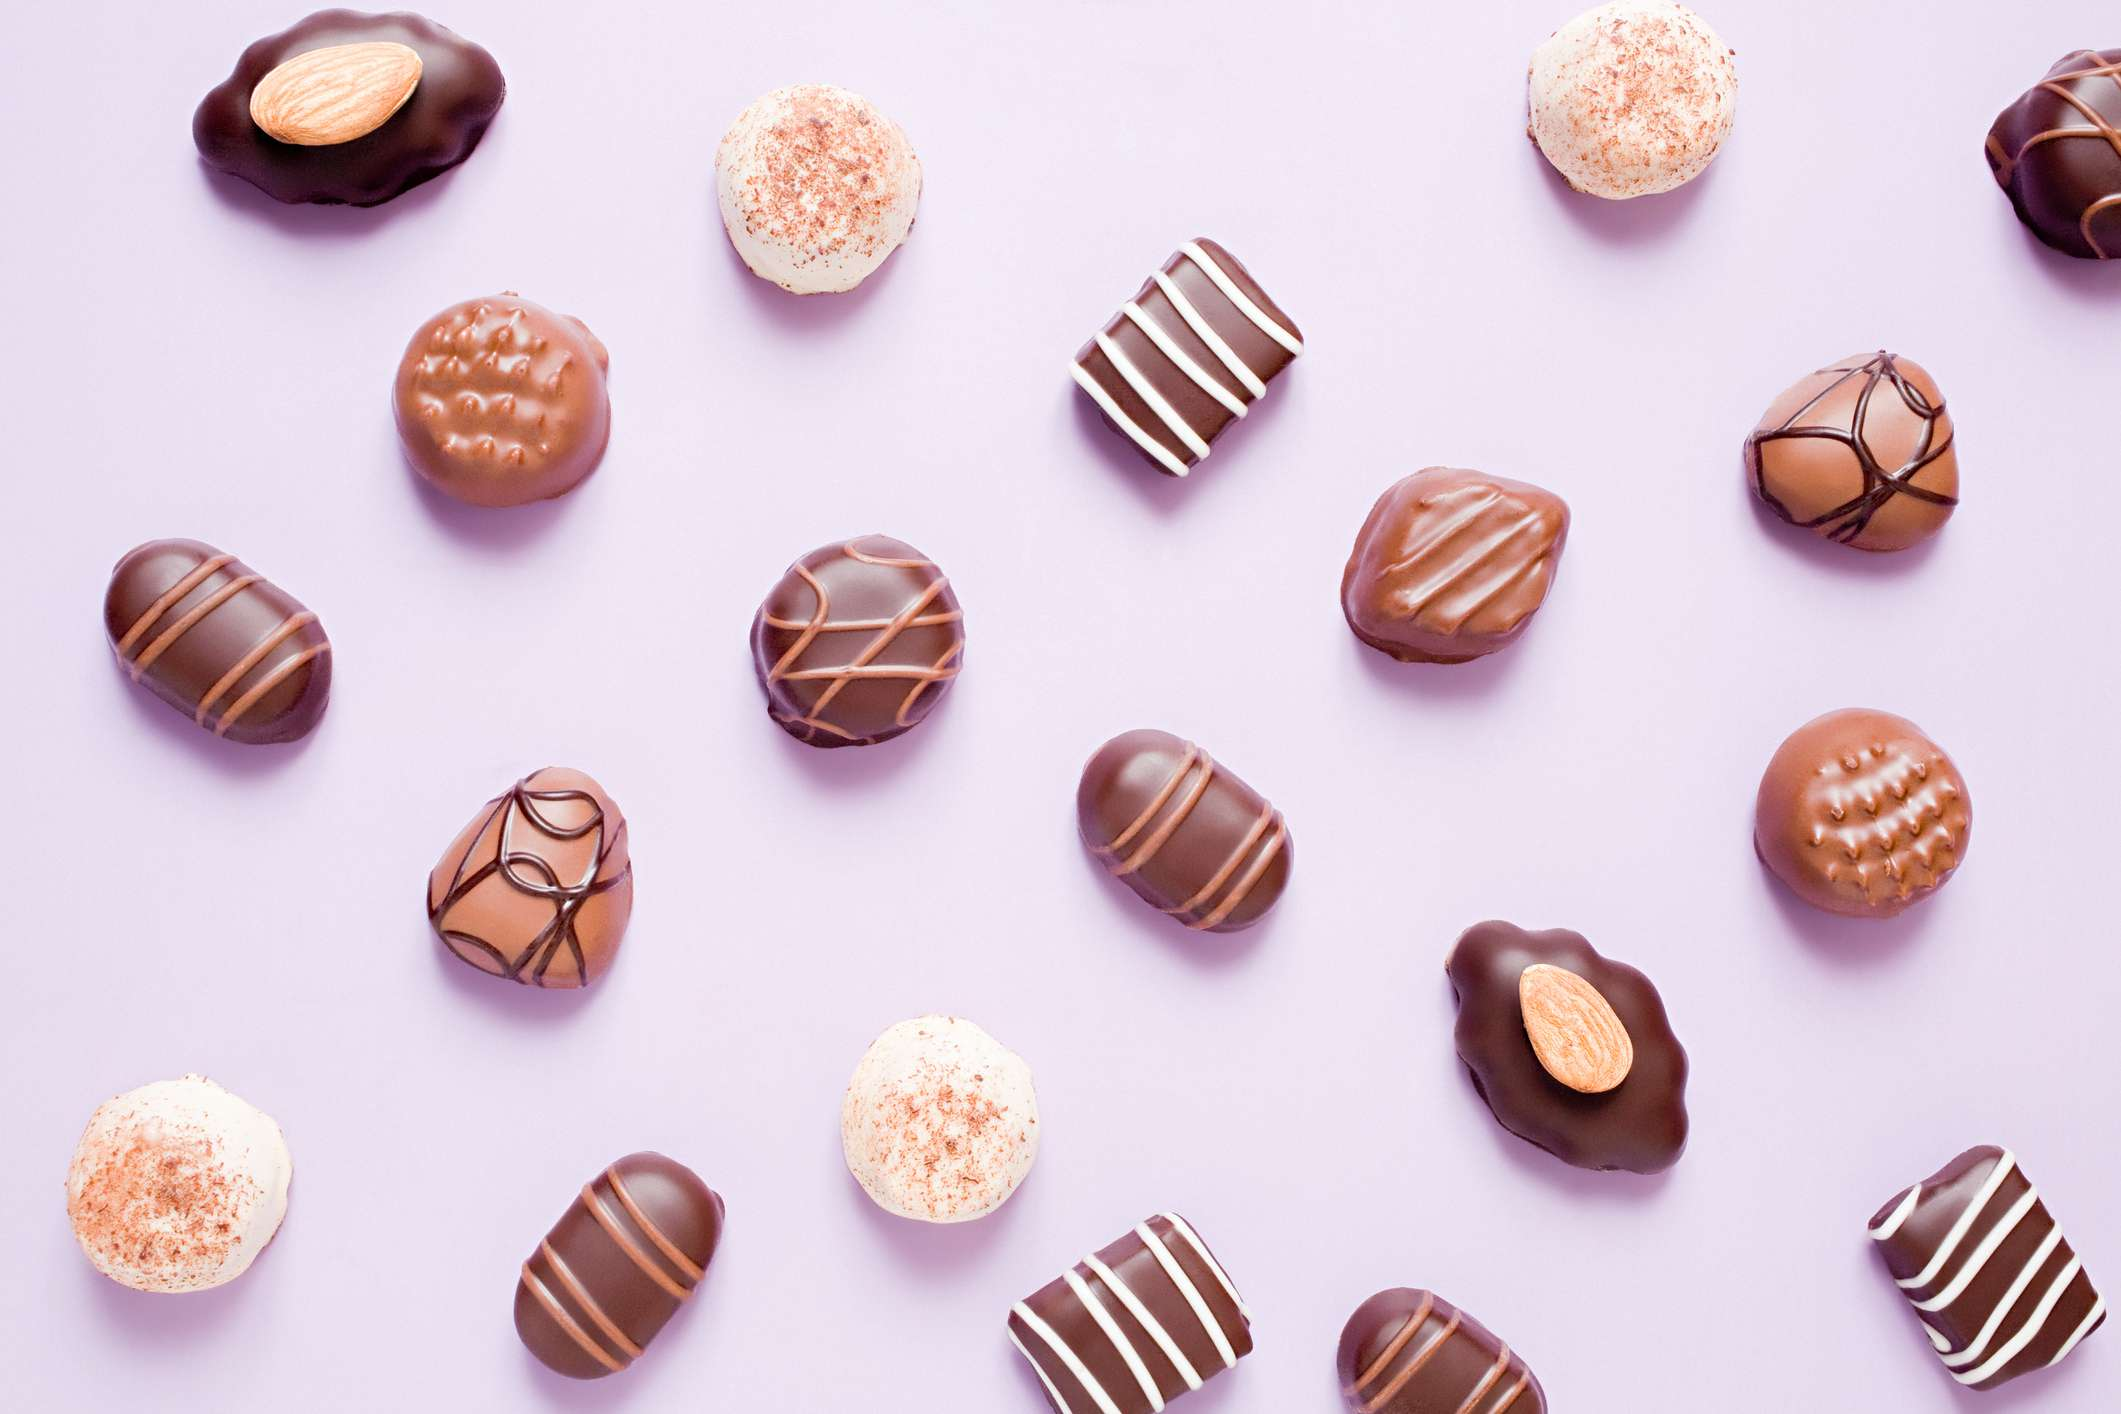 An assortment of chocolates laid out on purple paper